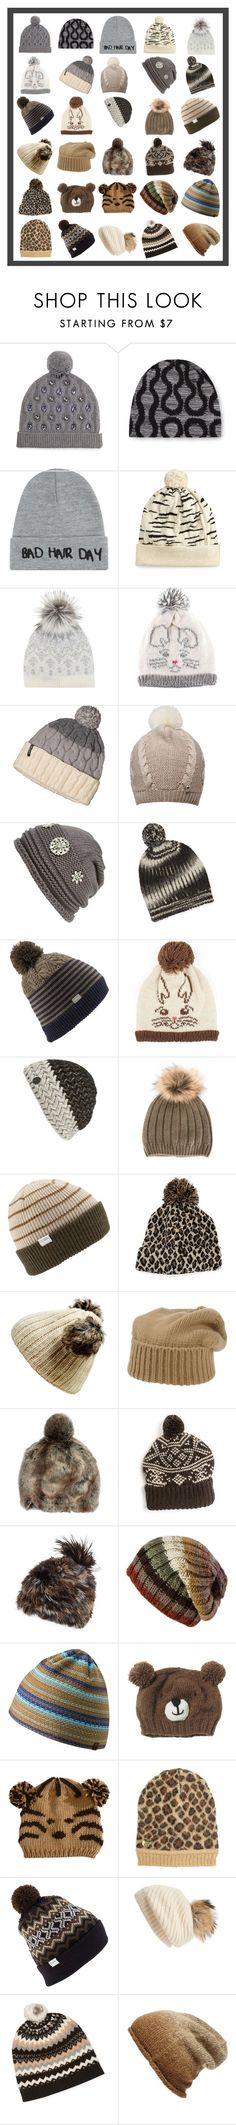 """""""Beanies in Gray, Brown, and White"""" by franceseattle ❤ liked on Polyvore featuring Markus Lupfer, Local Heroes, Rosie Sugden, Mint Velvet, Coal, Patagonia, UGG Australia, Cara, M.Patmos and Vince Camuto"""